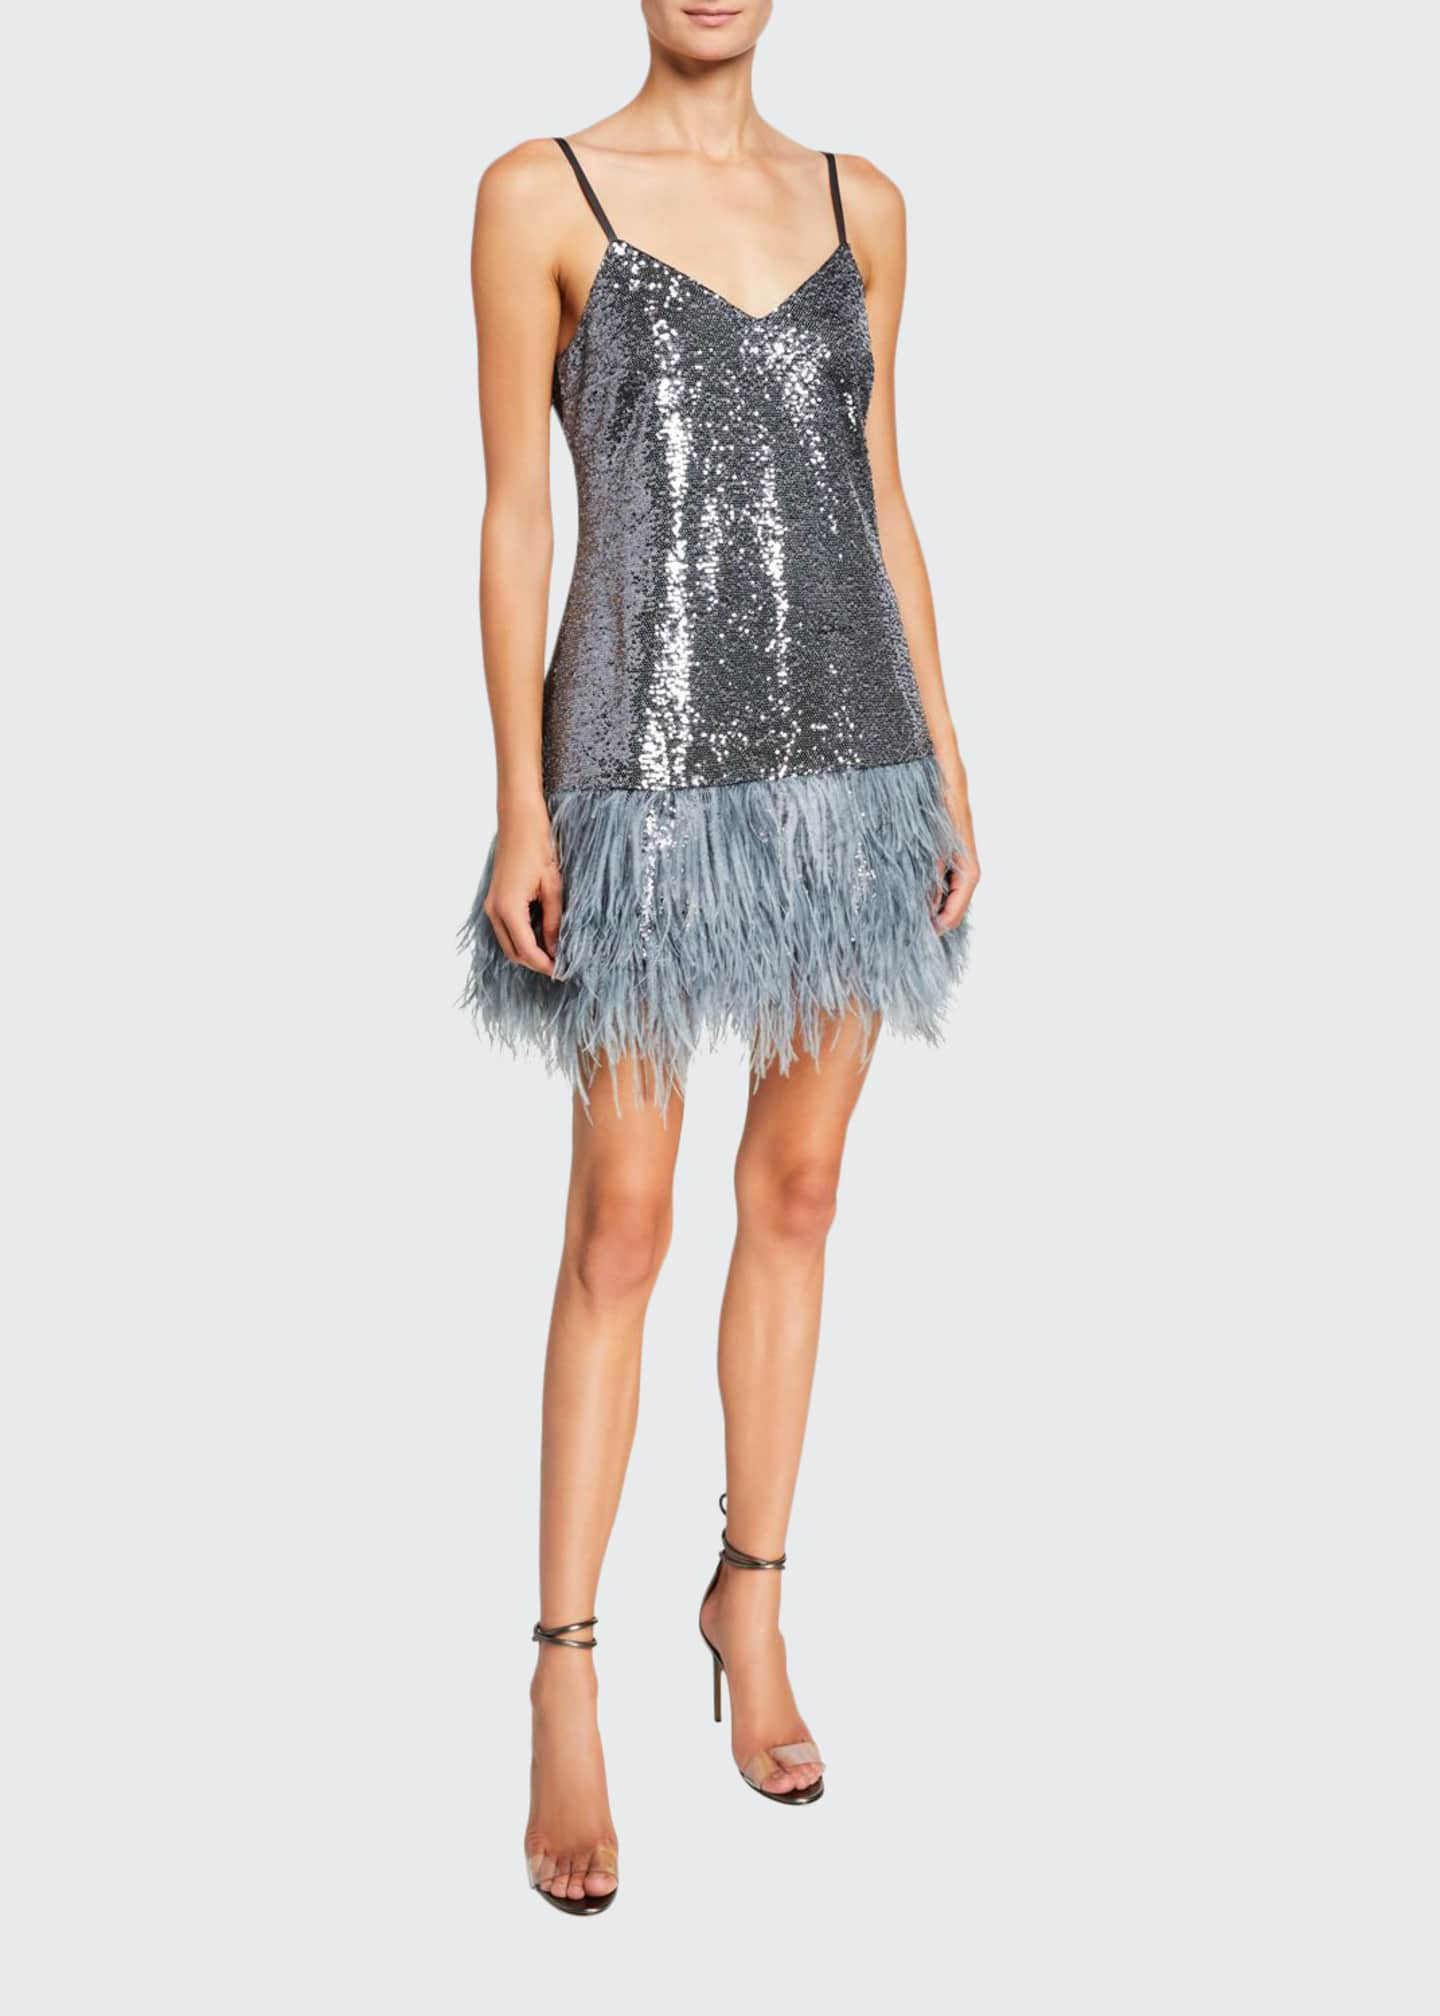 cinq a sept Athena Sequined Cocktail Dress w/